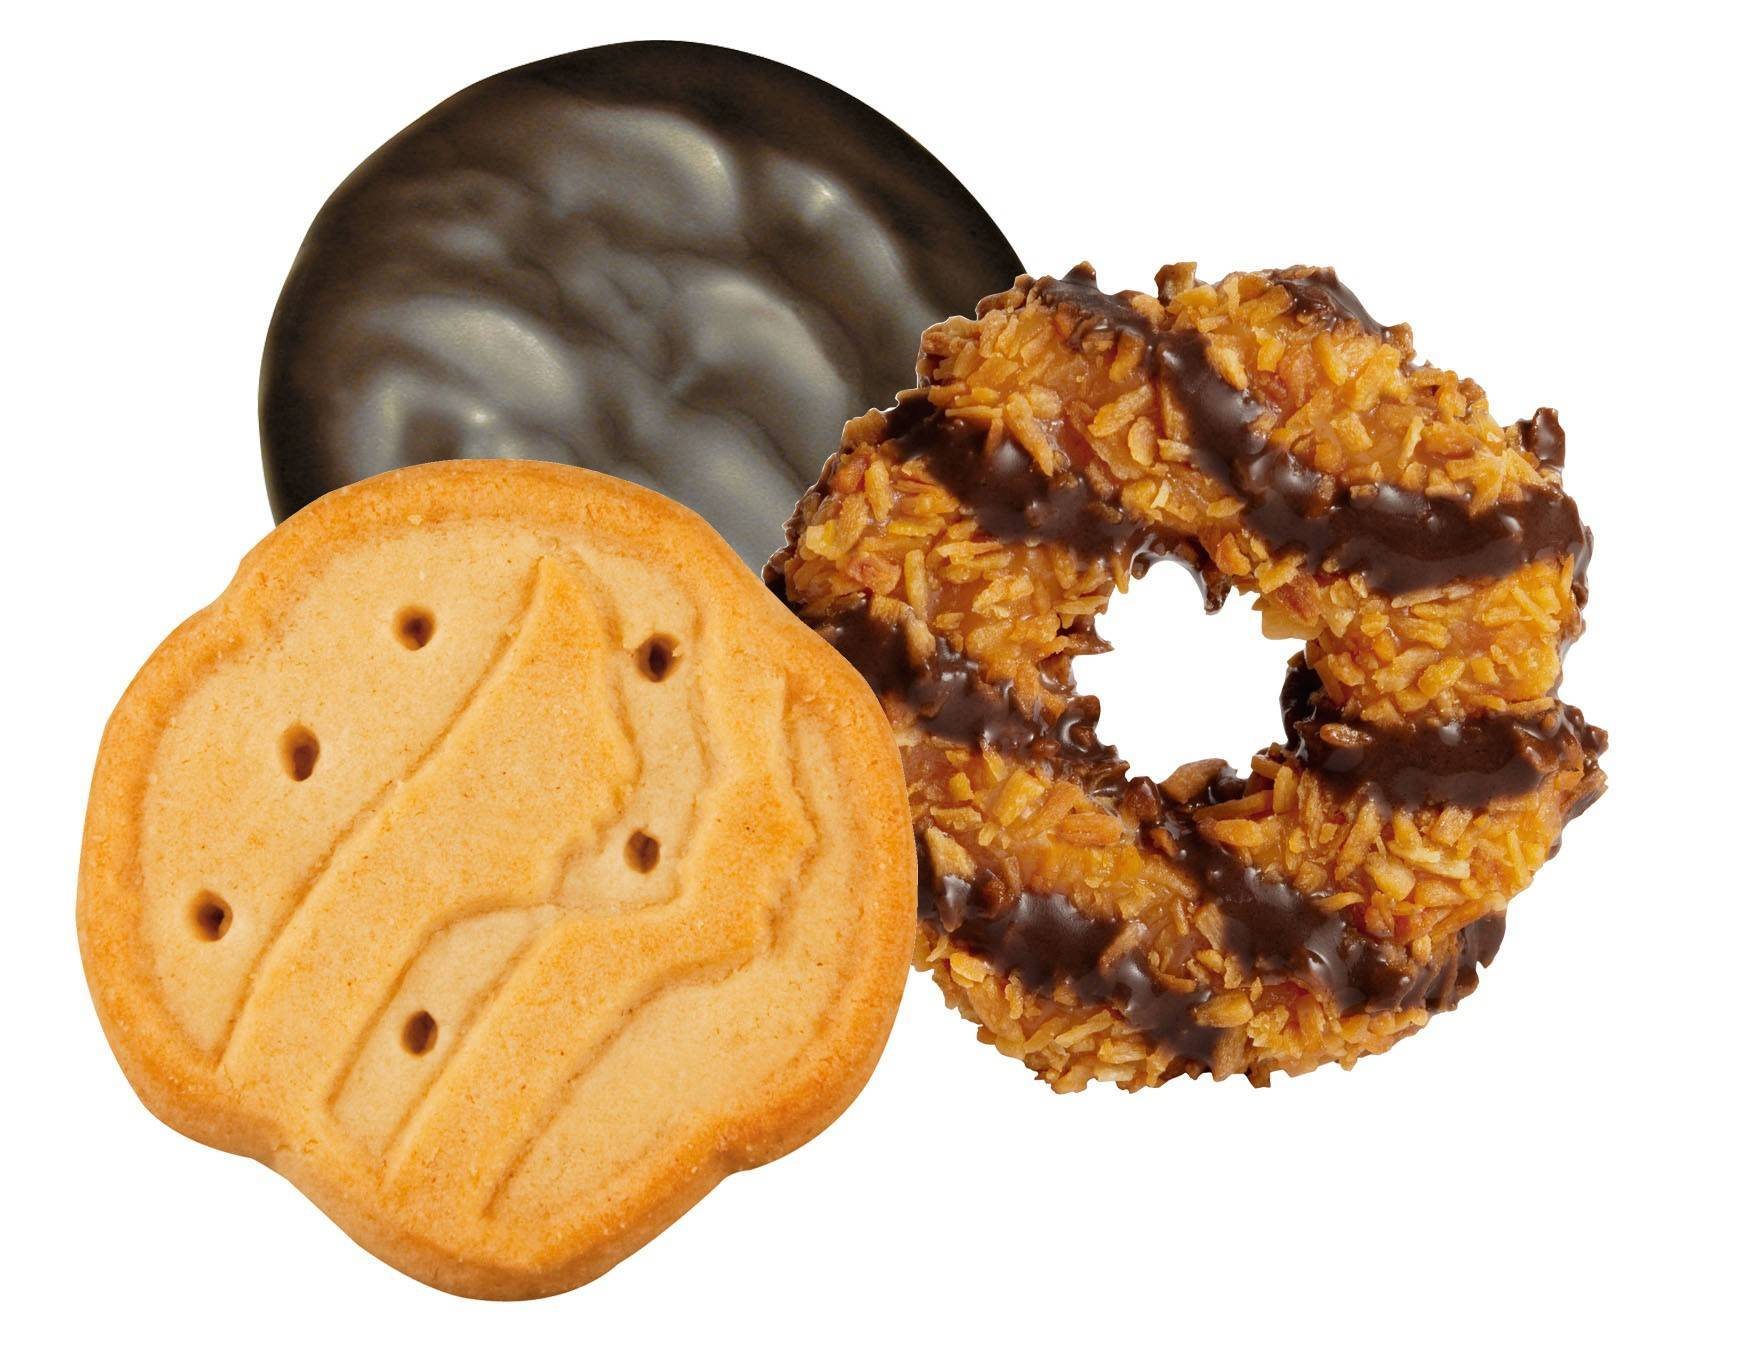 Wait, Whoa: You Can Buy Girl Scout Cookies from Amazon